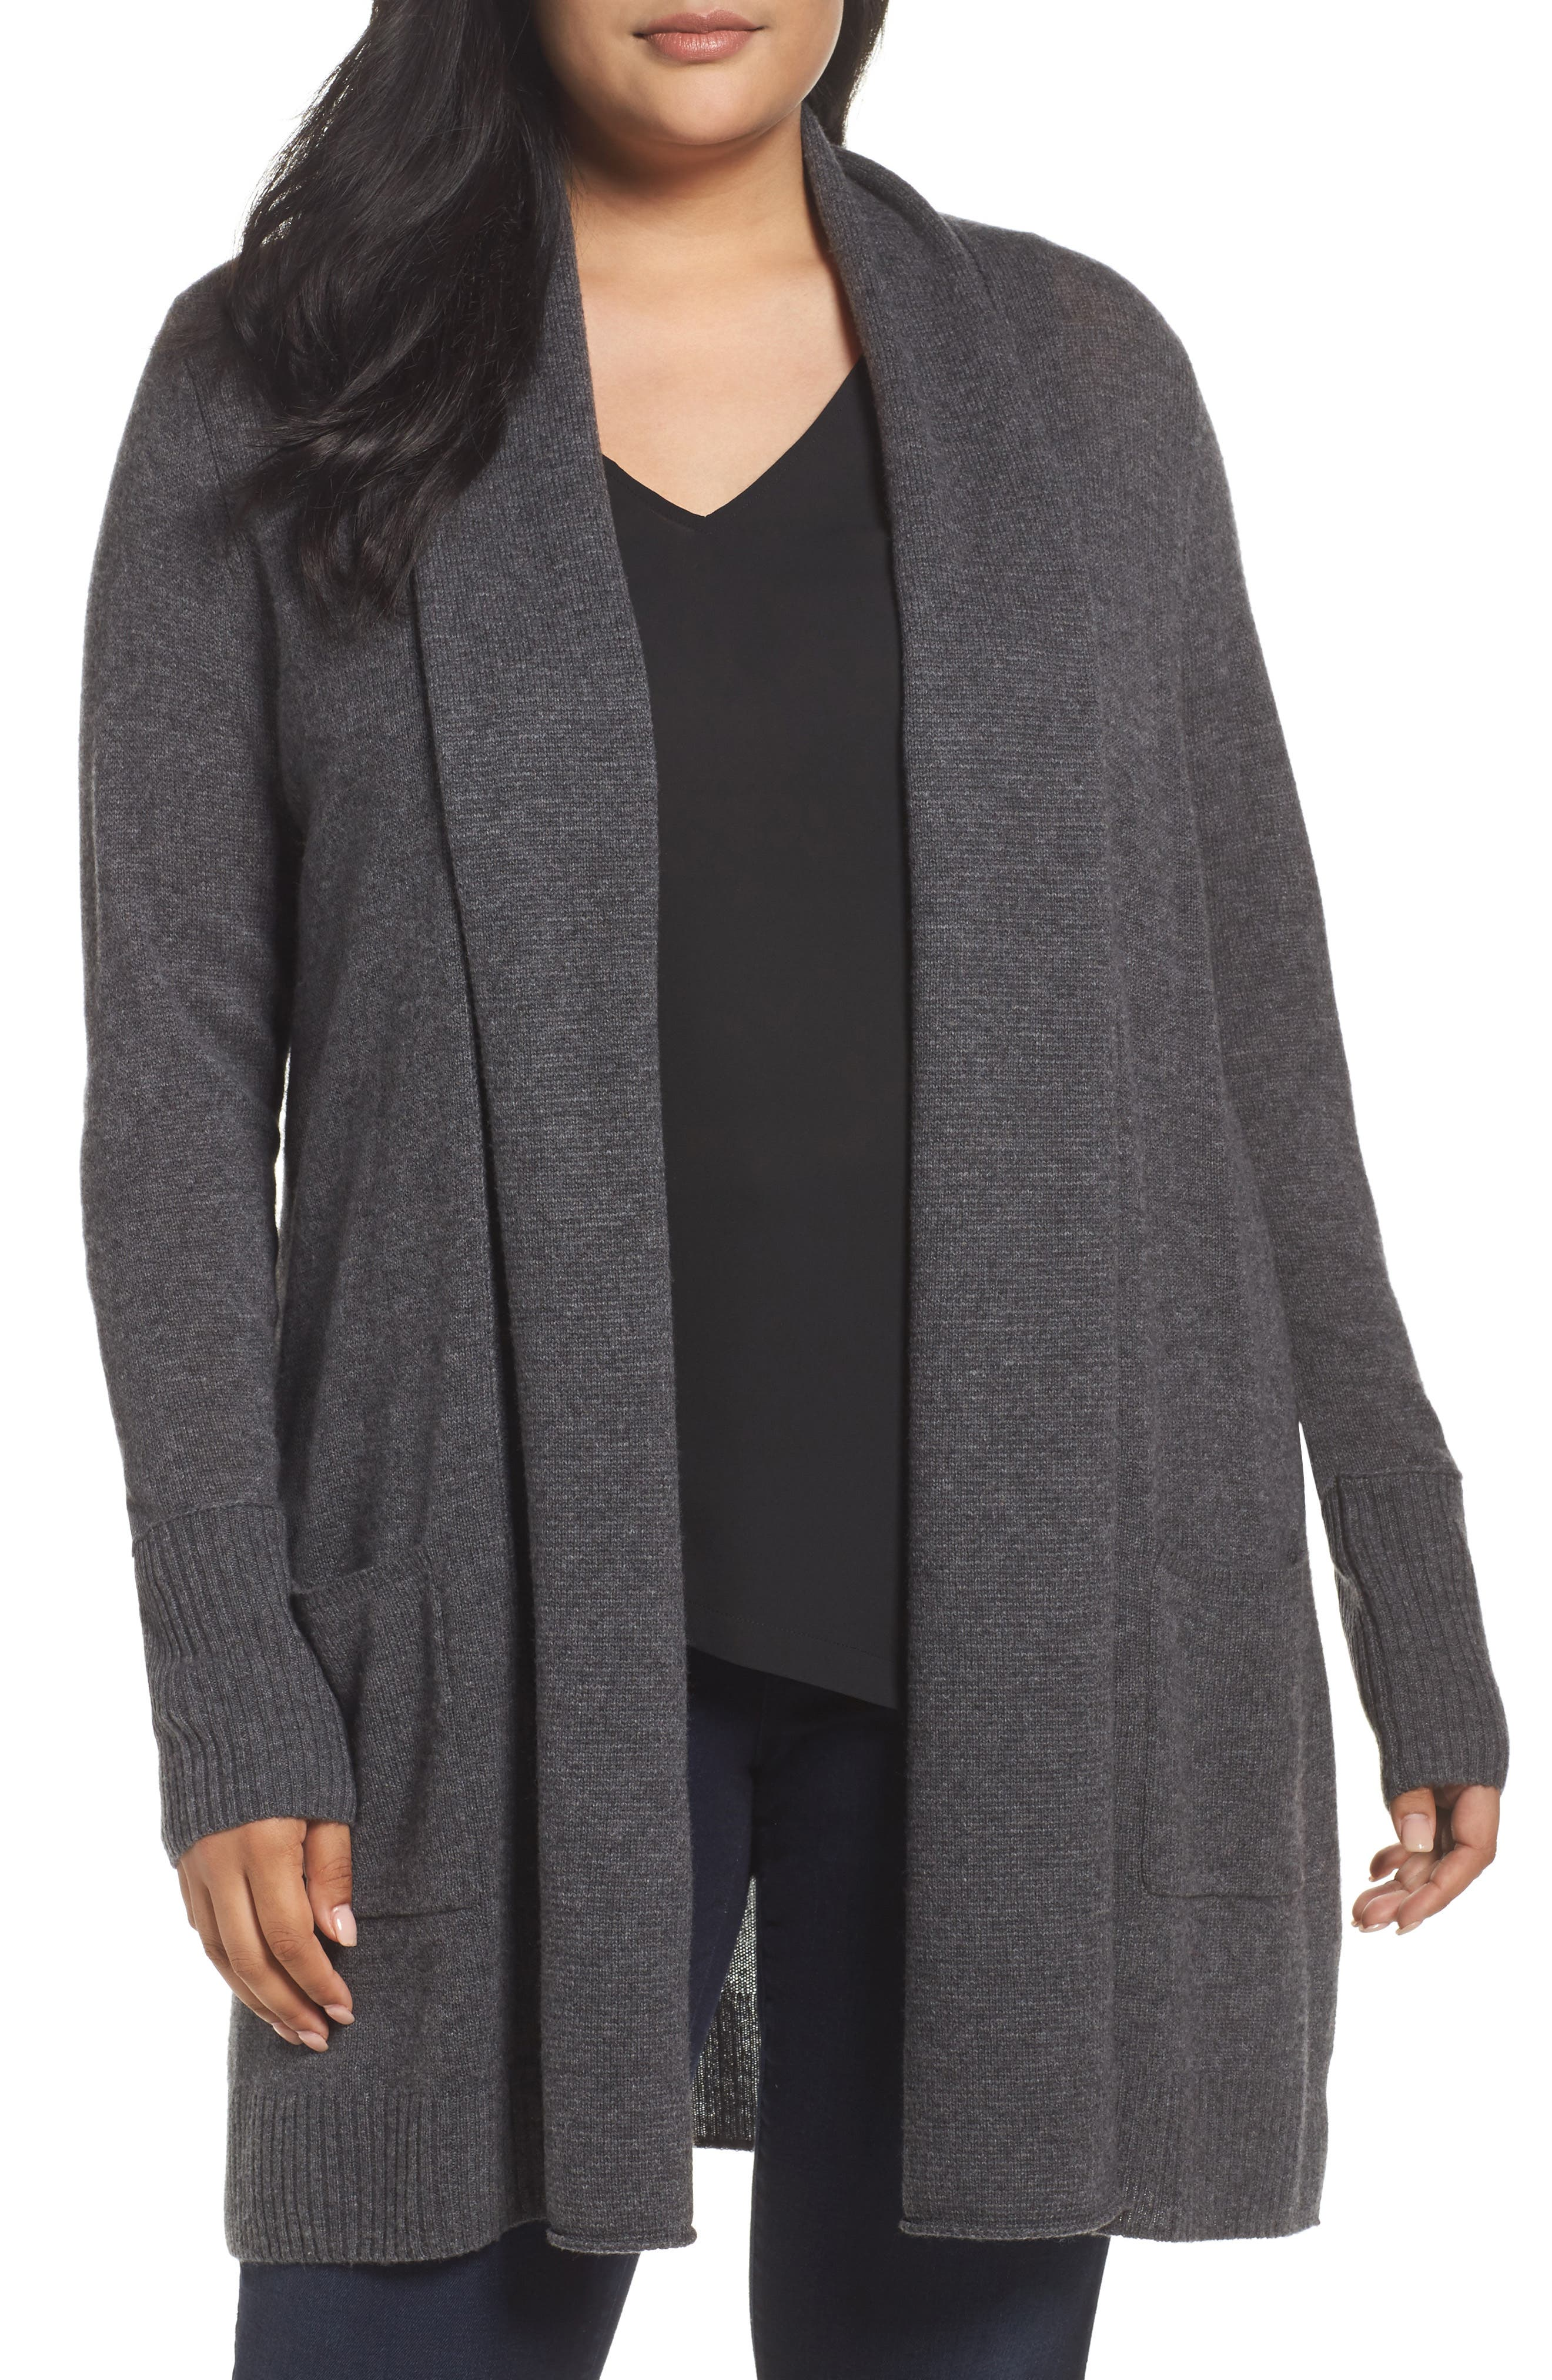 Pocket Cardigan,                         Main,                         color, Grey Charcoal Heather